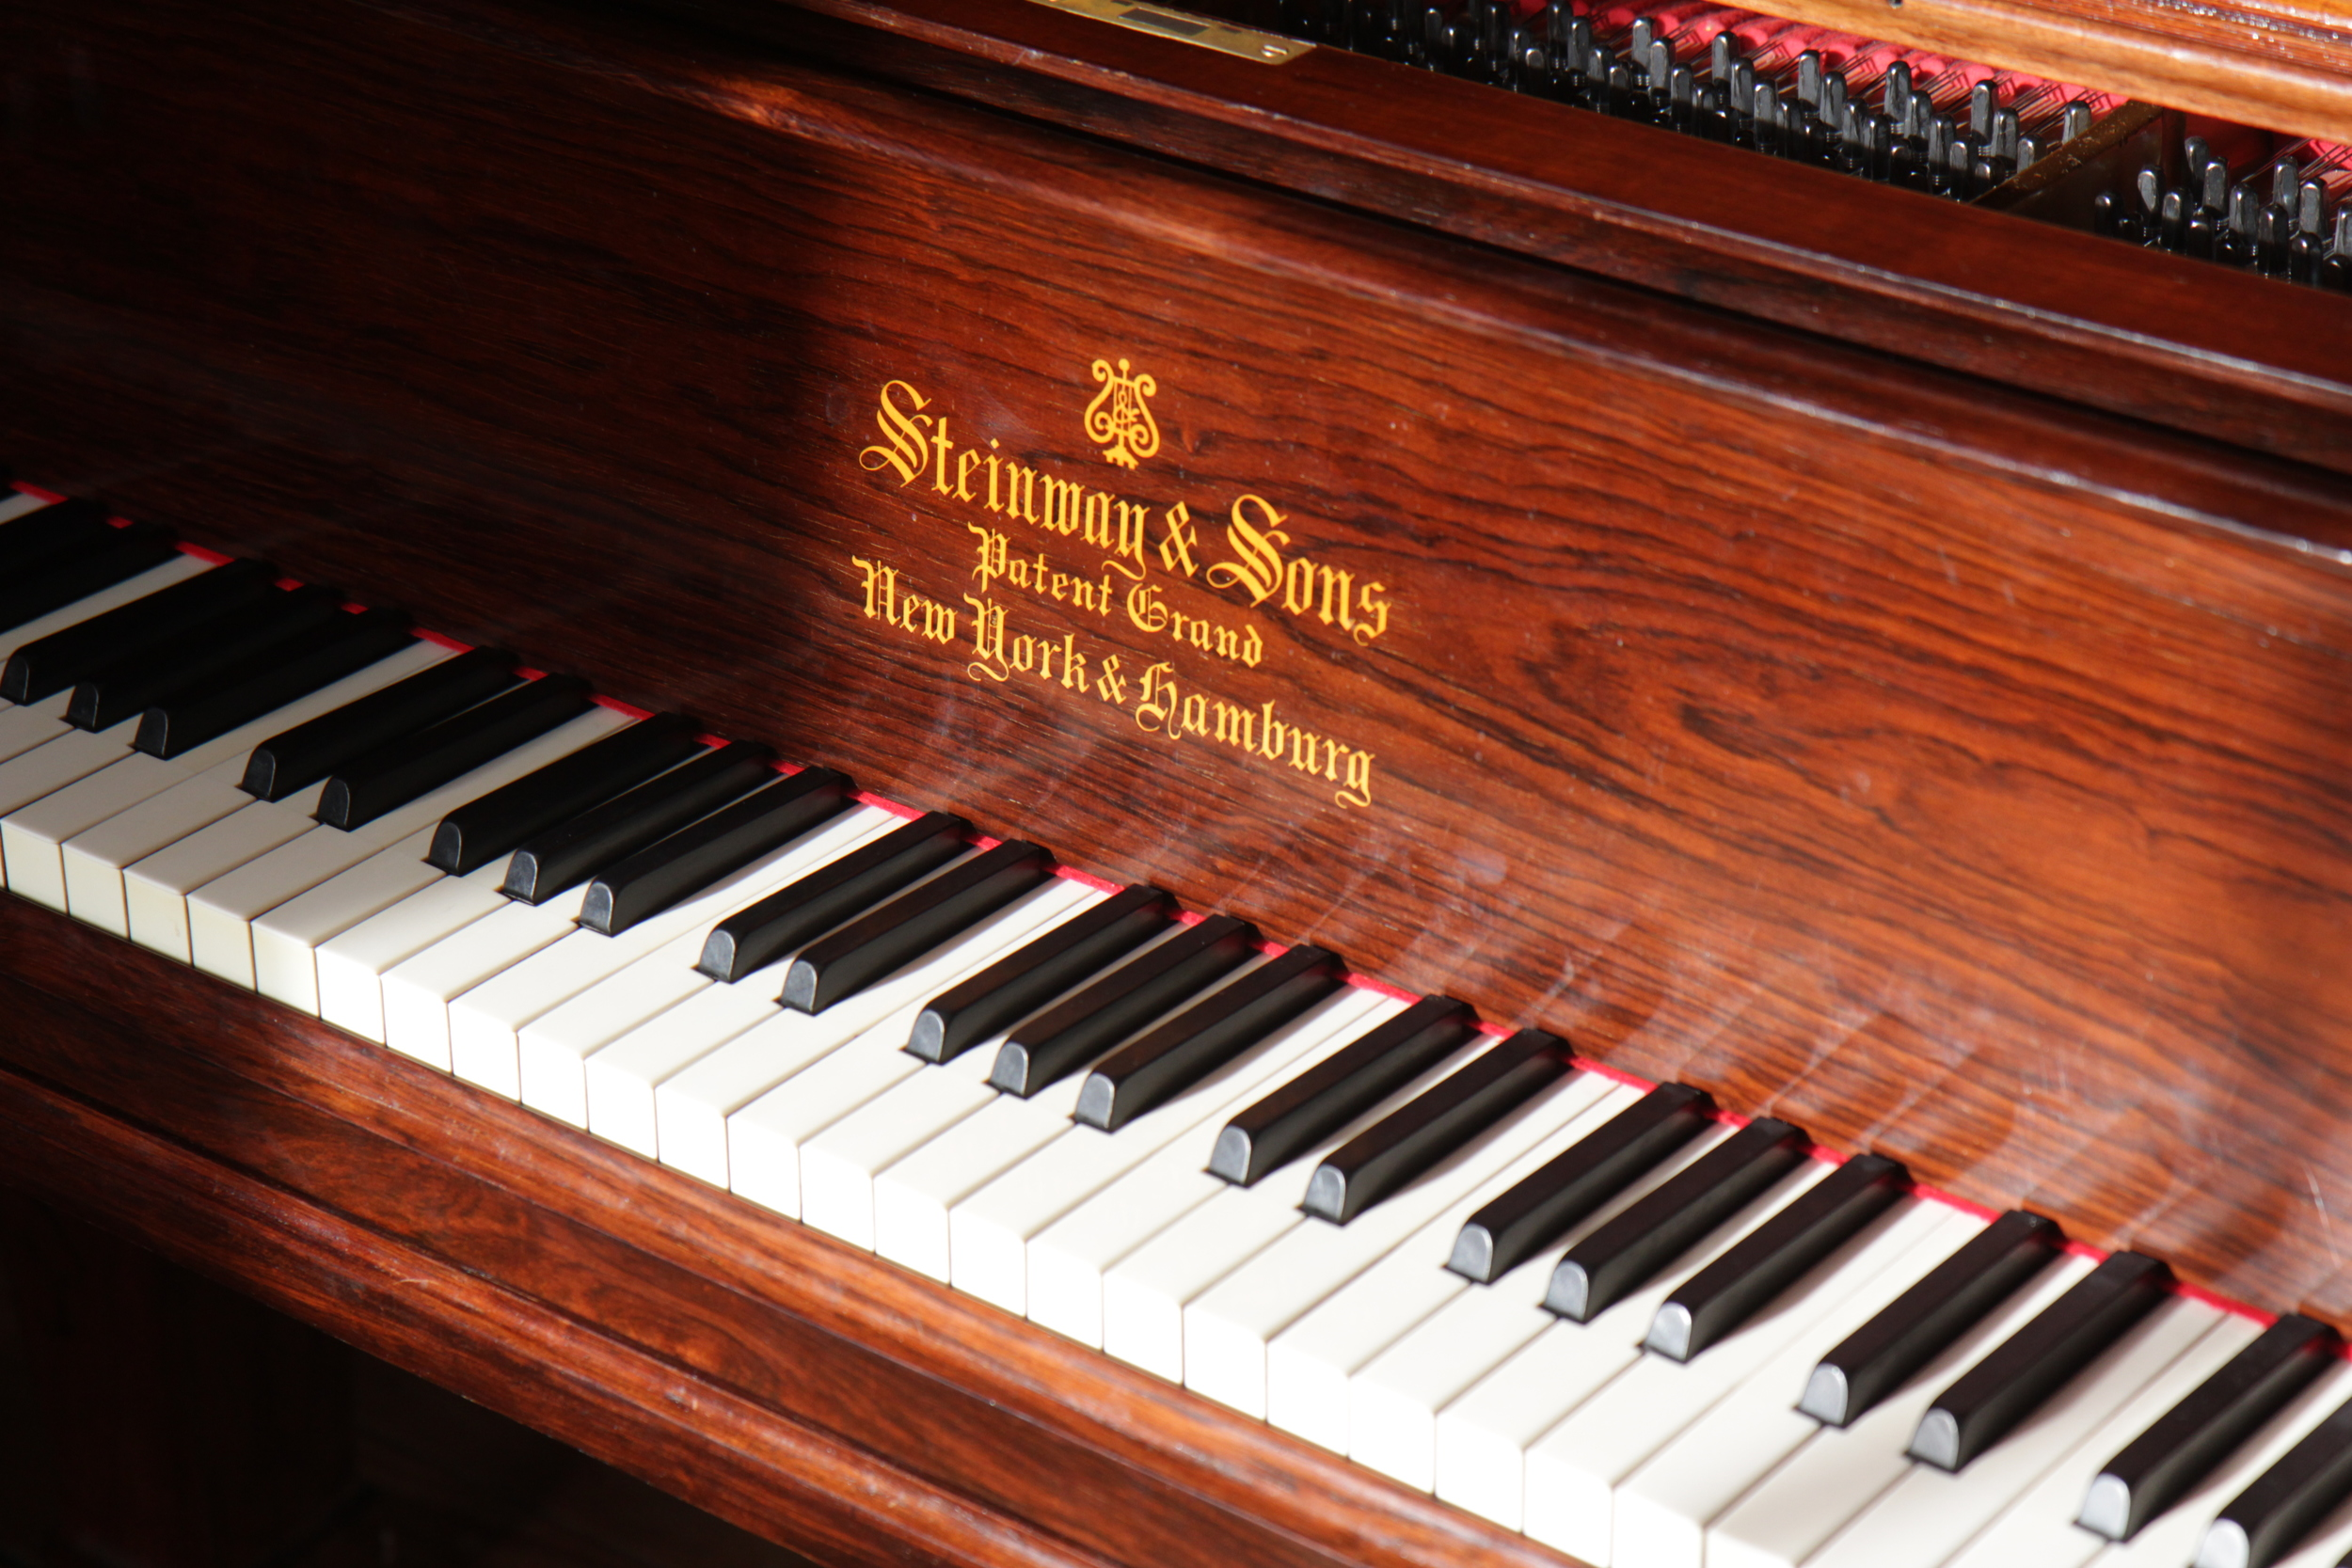 Townley Hall Steinway